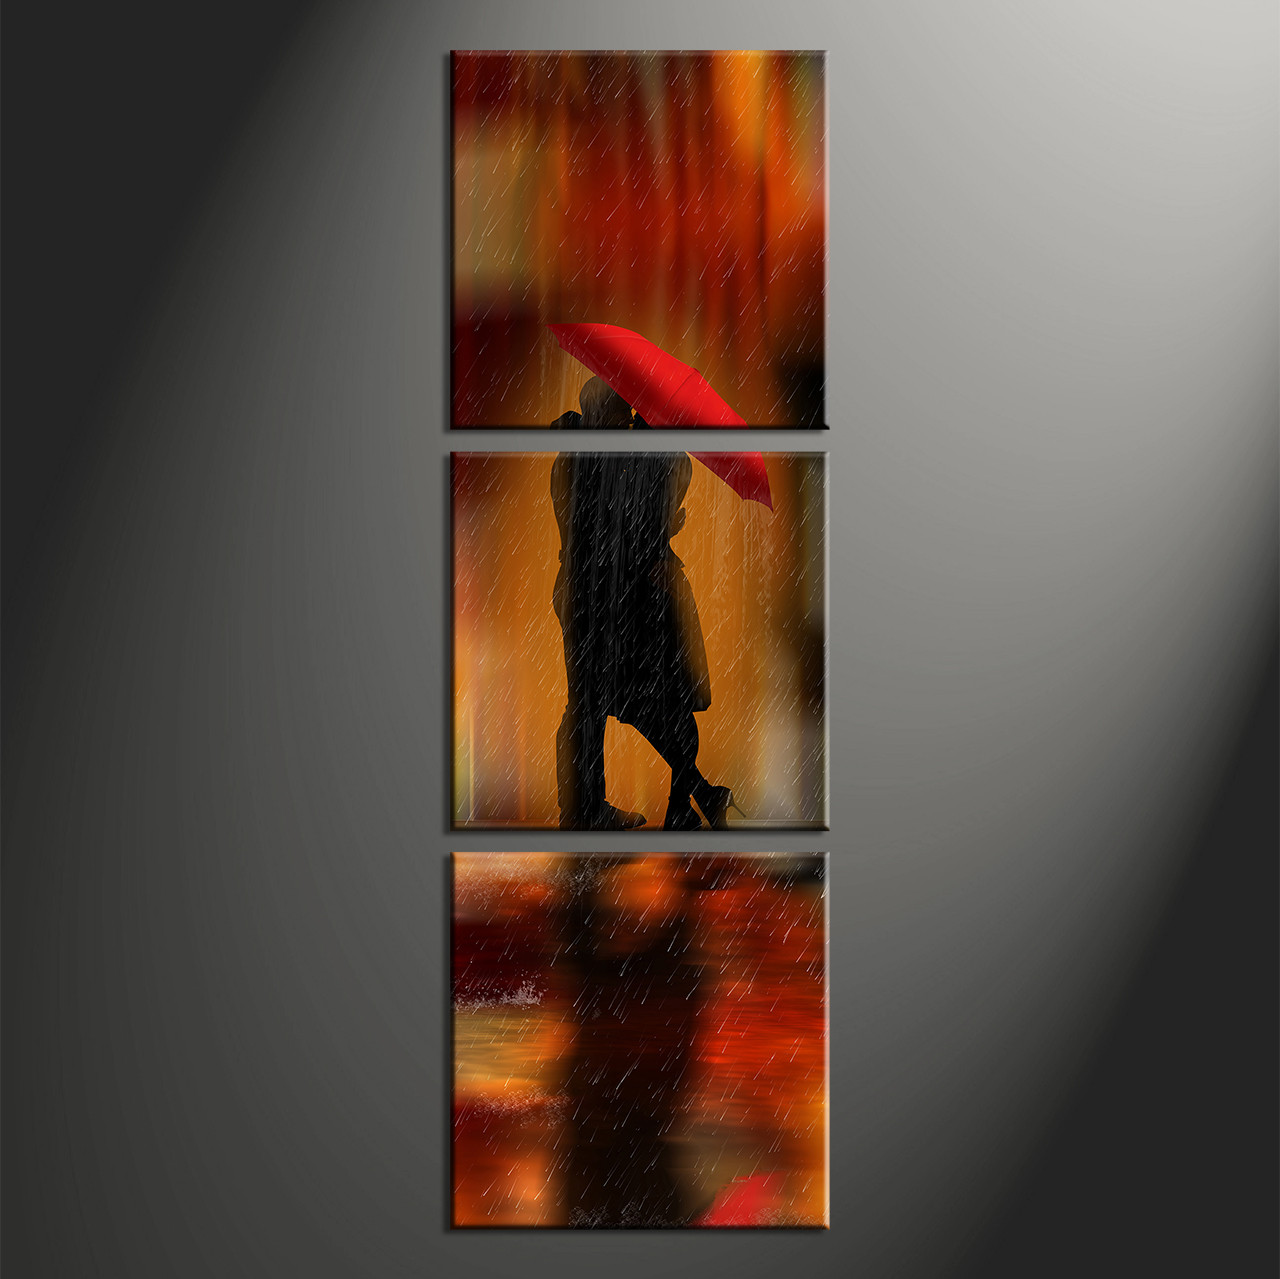 Multi Piece Canvas Wall Art 3 piece red modern rain photo canvas